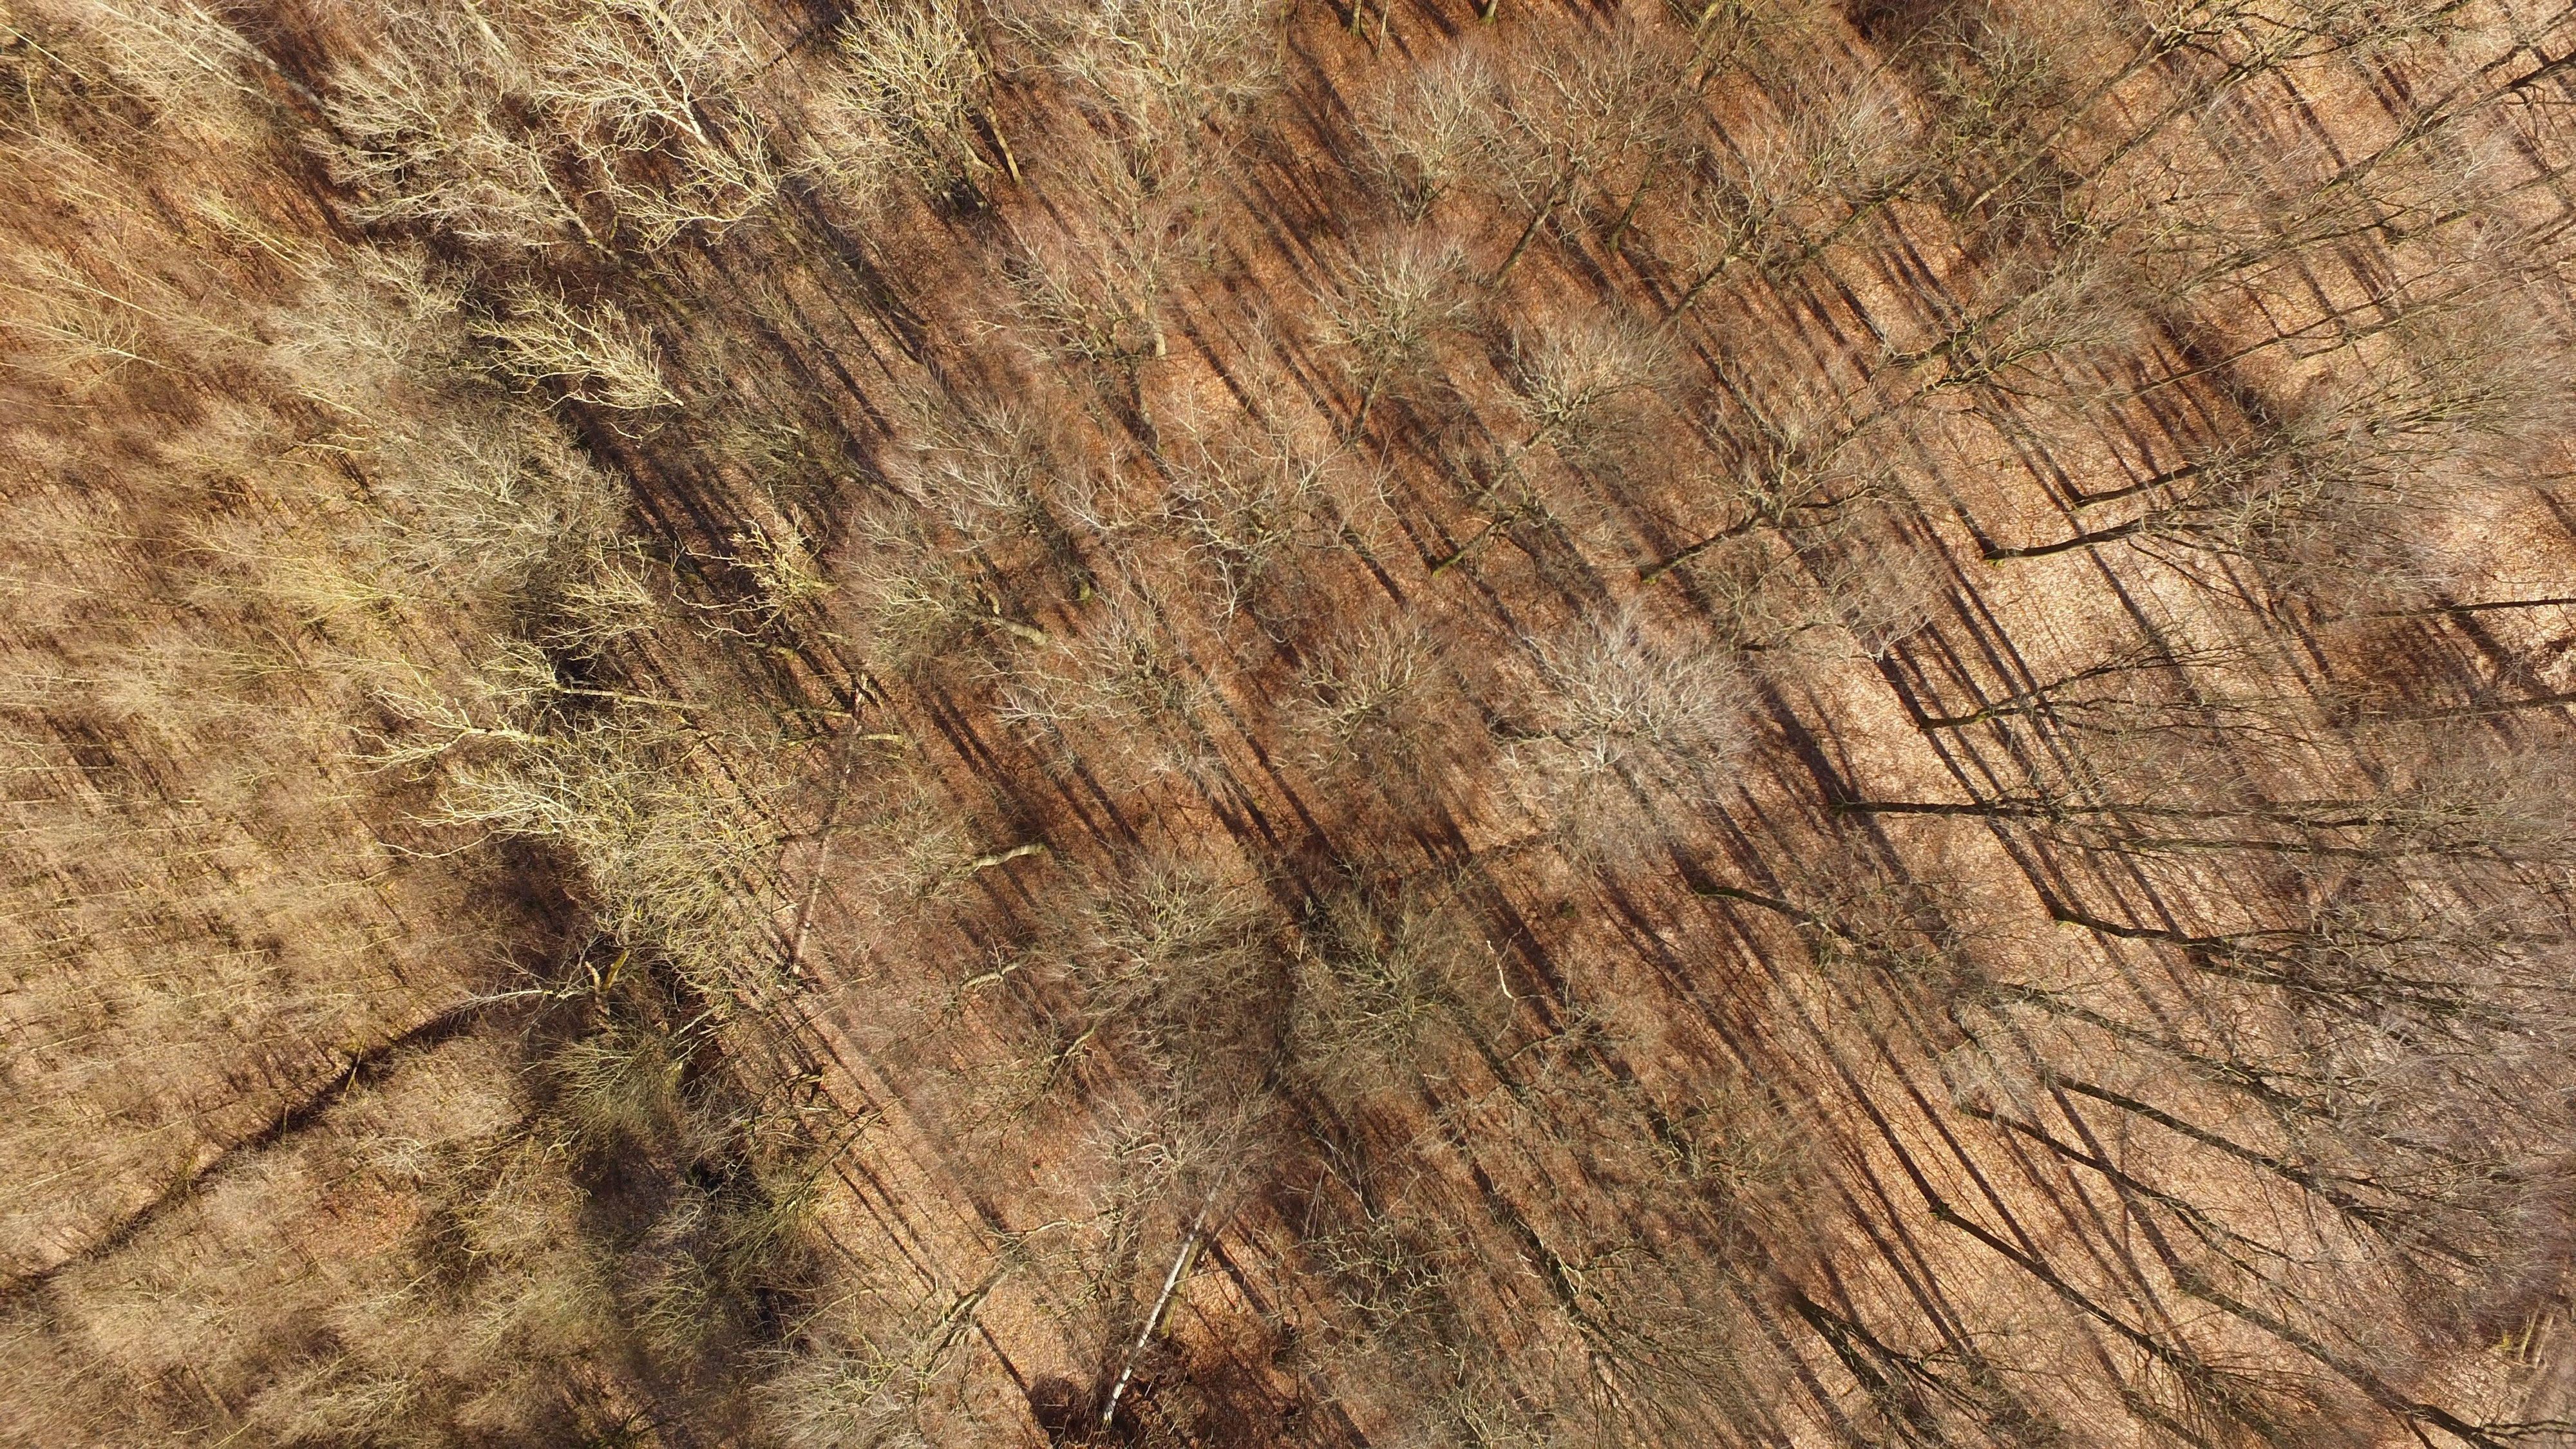 Top Down View Of The Forest In Torrild Denmark Photo By Benjamin Sloth Lindgreen